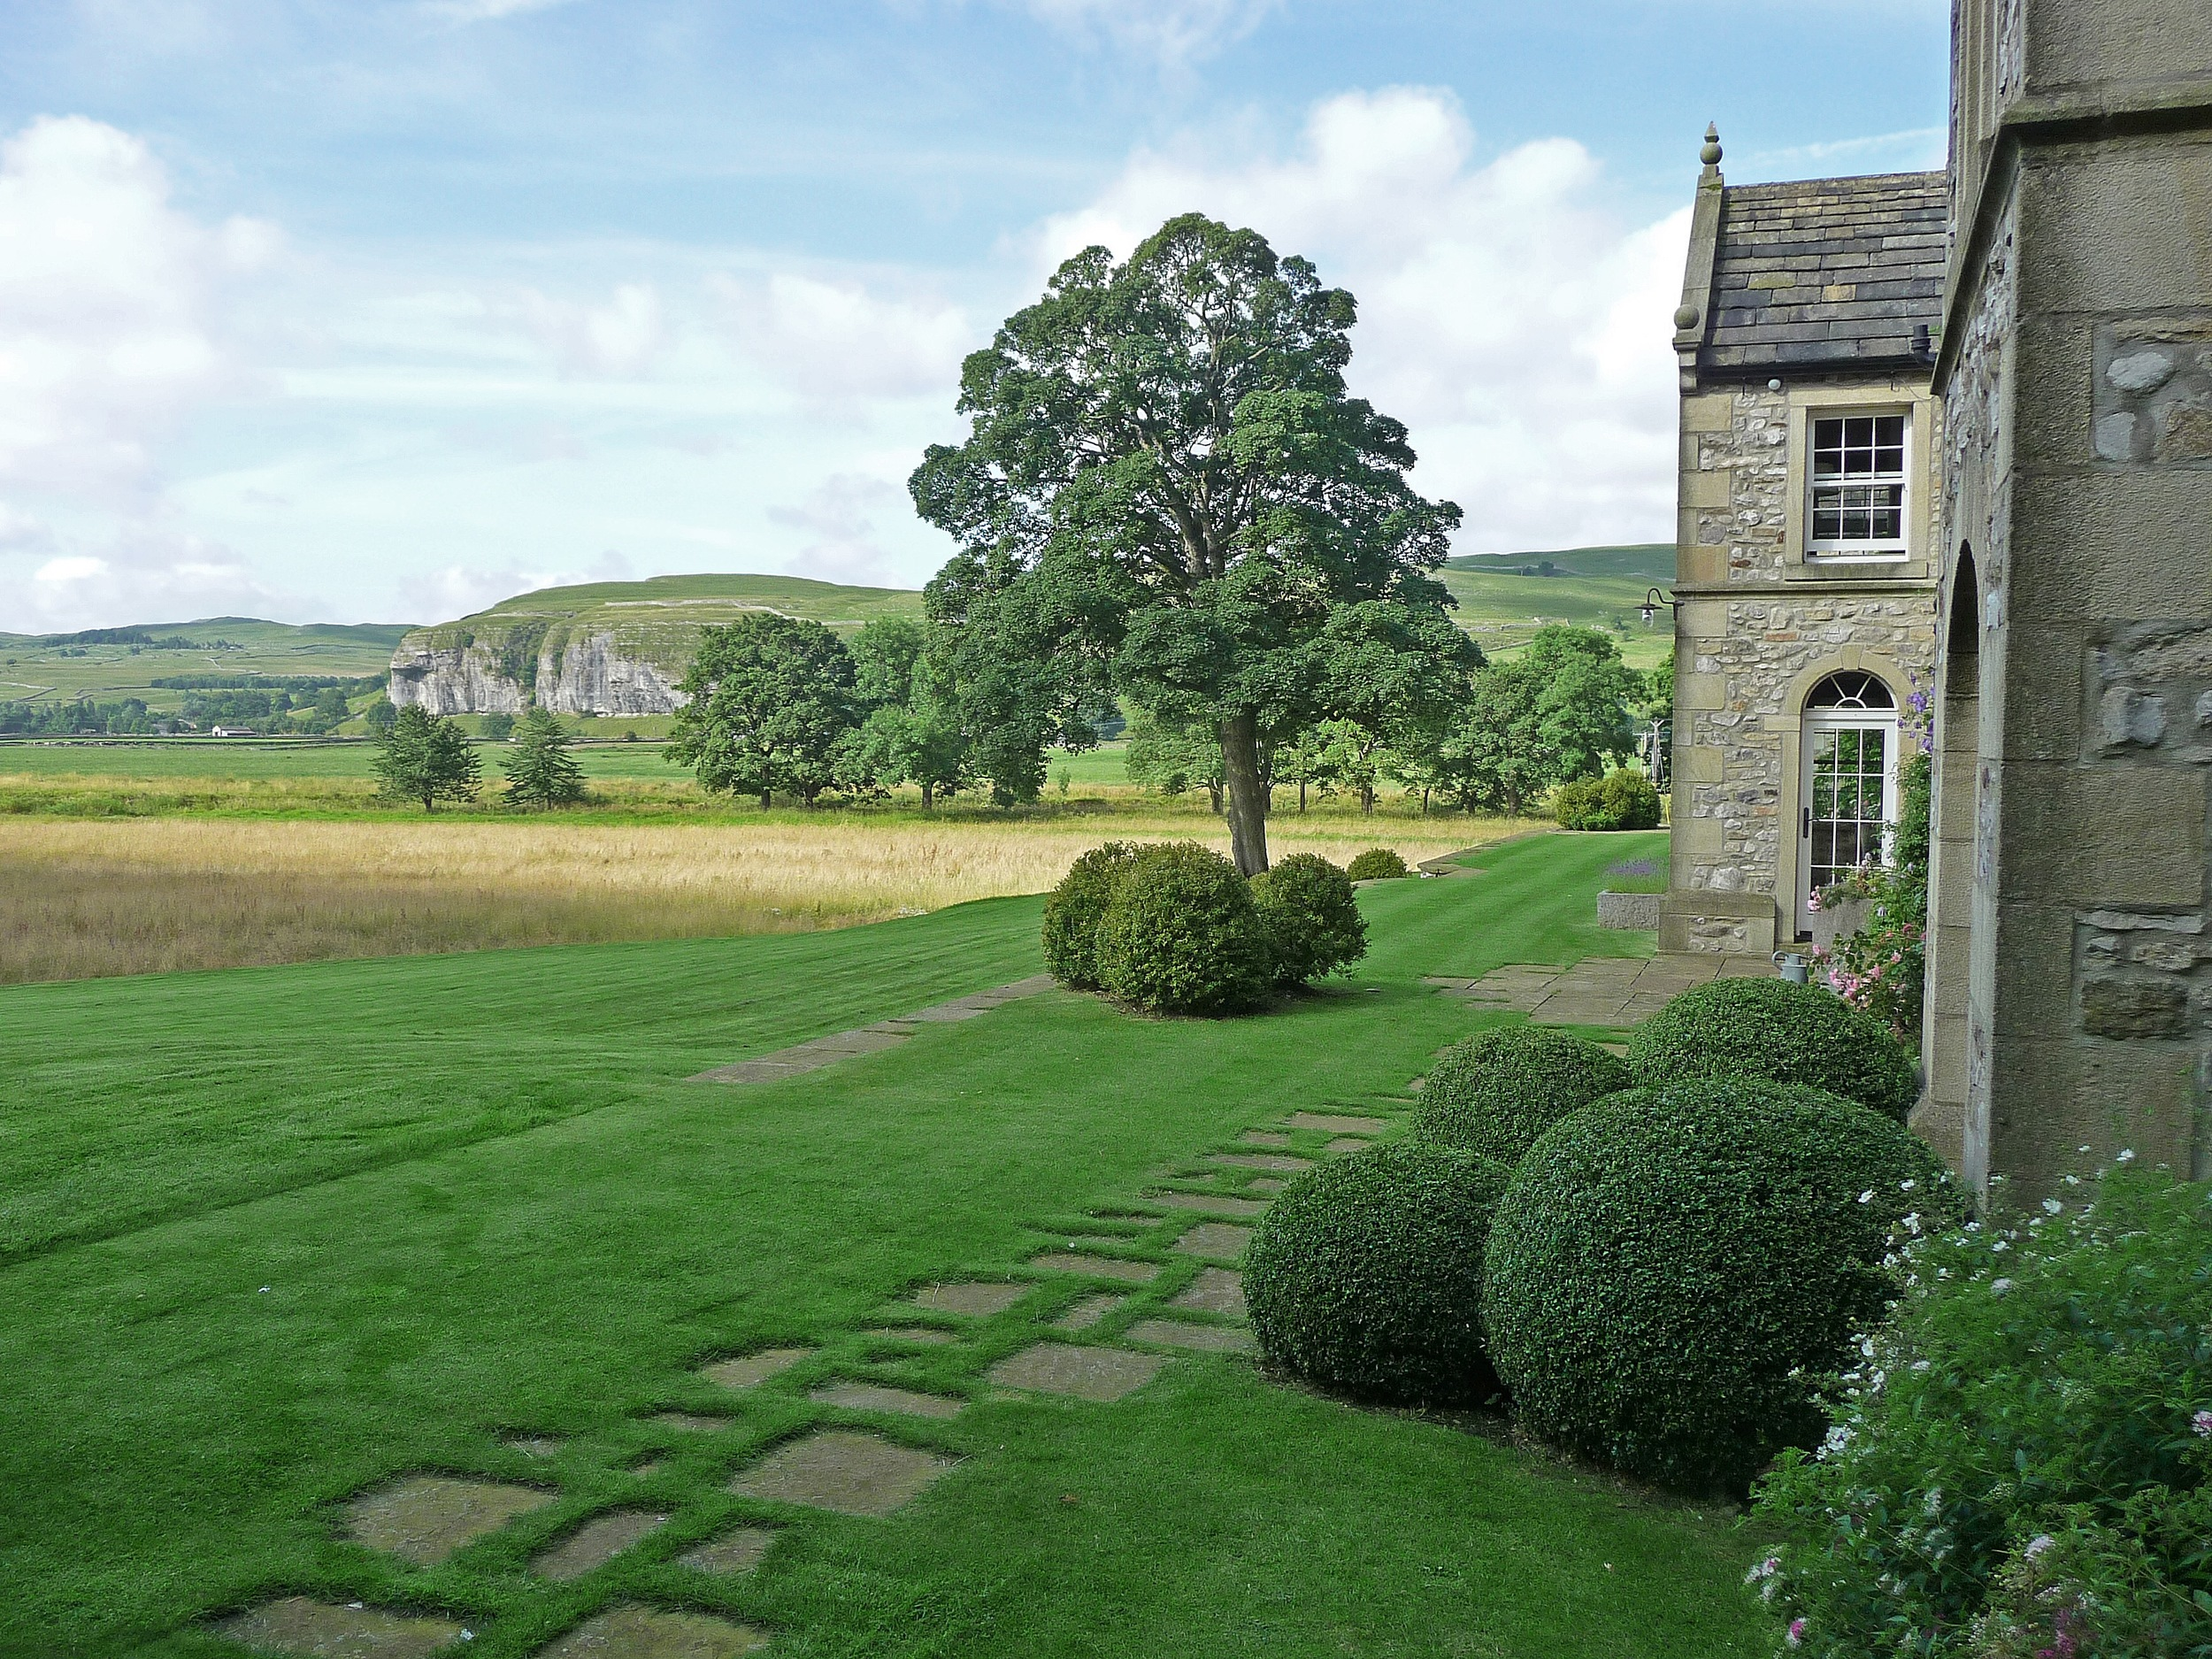 House to Dales view.jpg